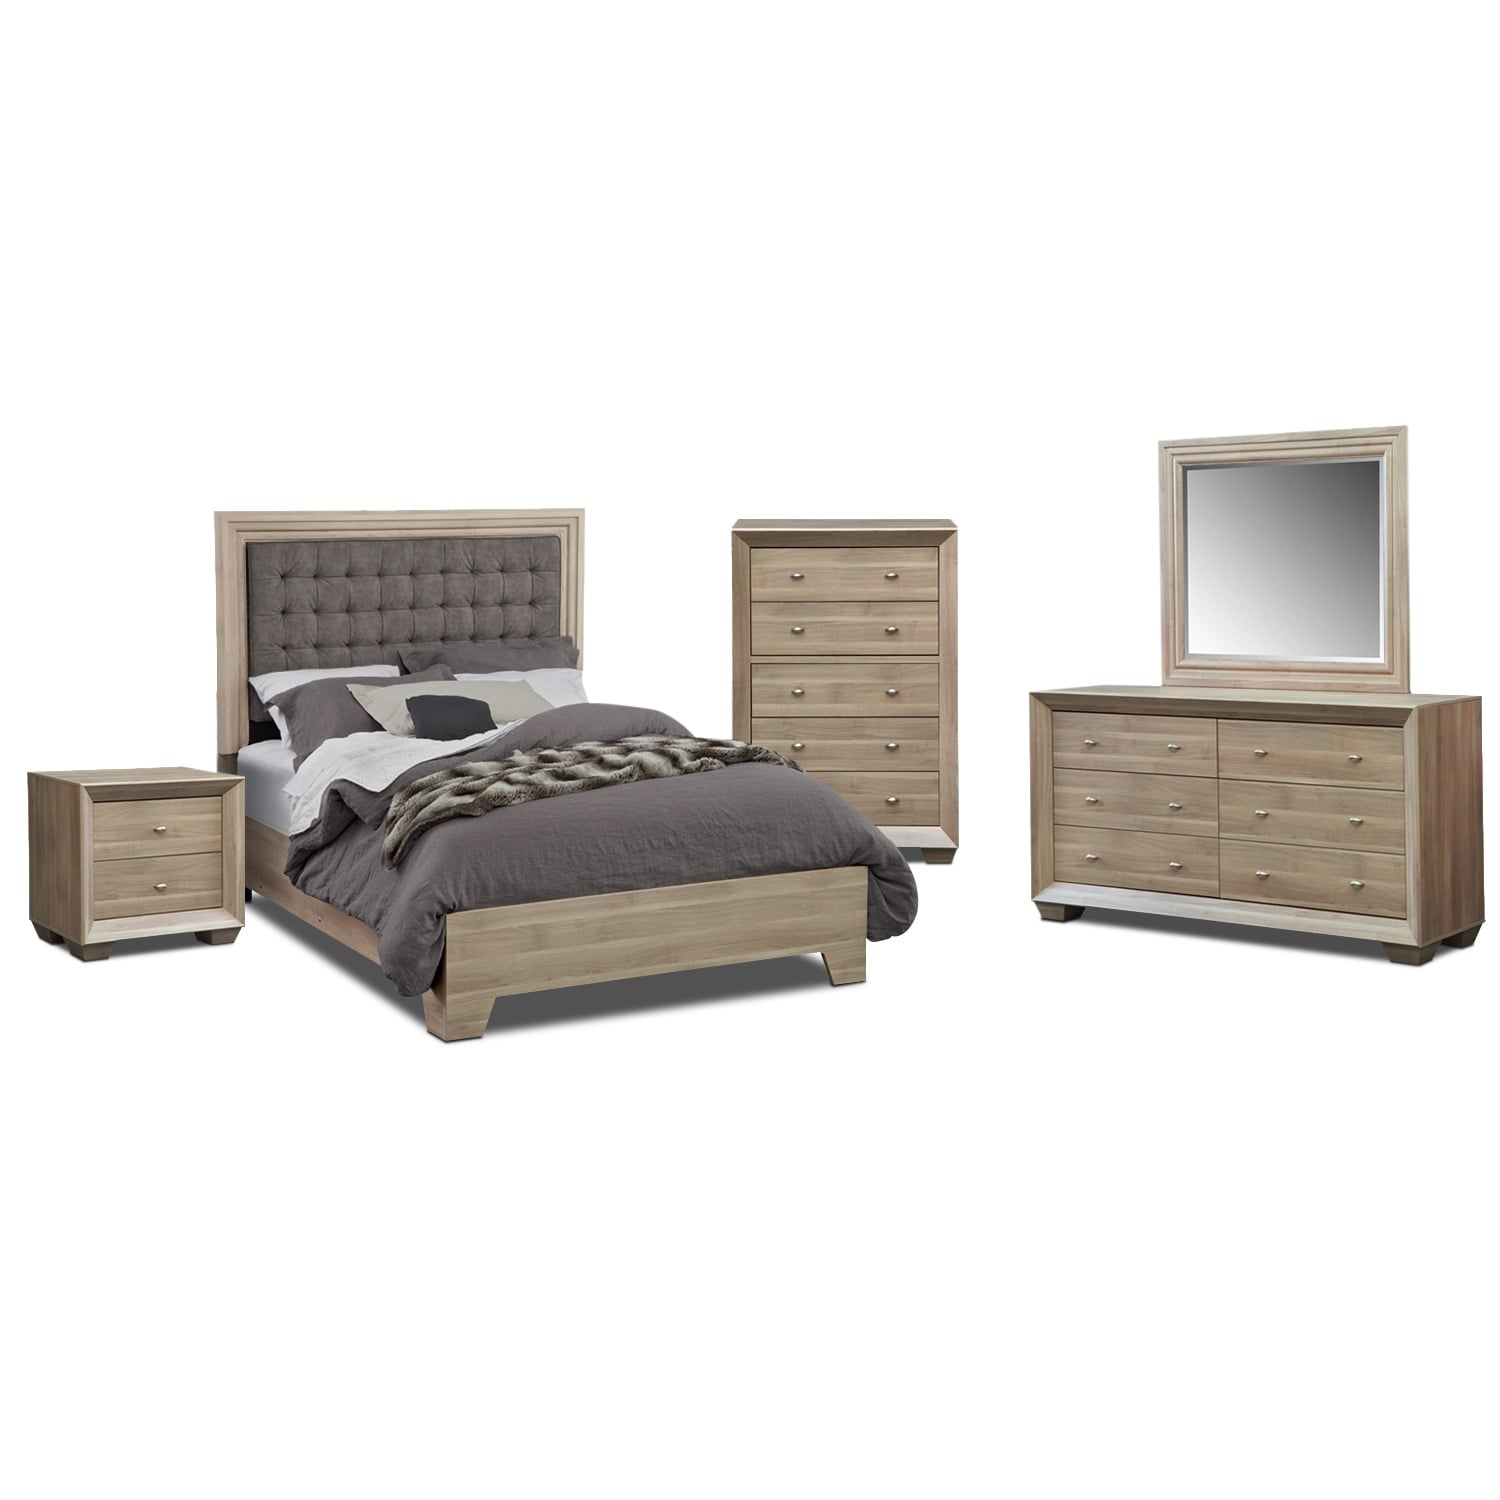 Bedroom Furniture - Siena 7 Pc. Queen Bedroom